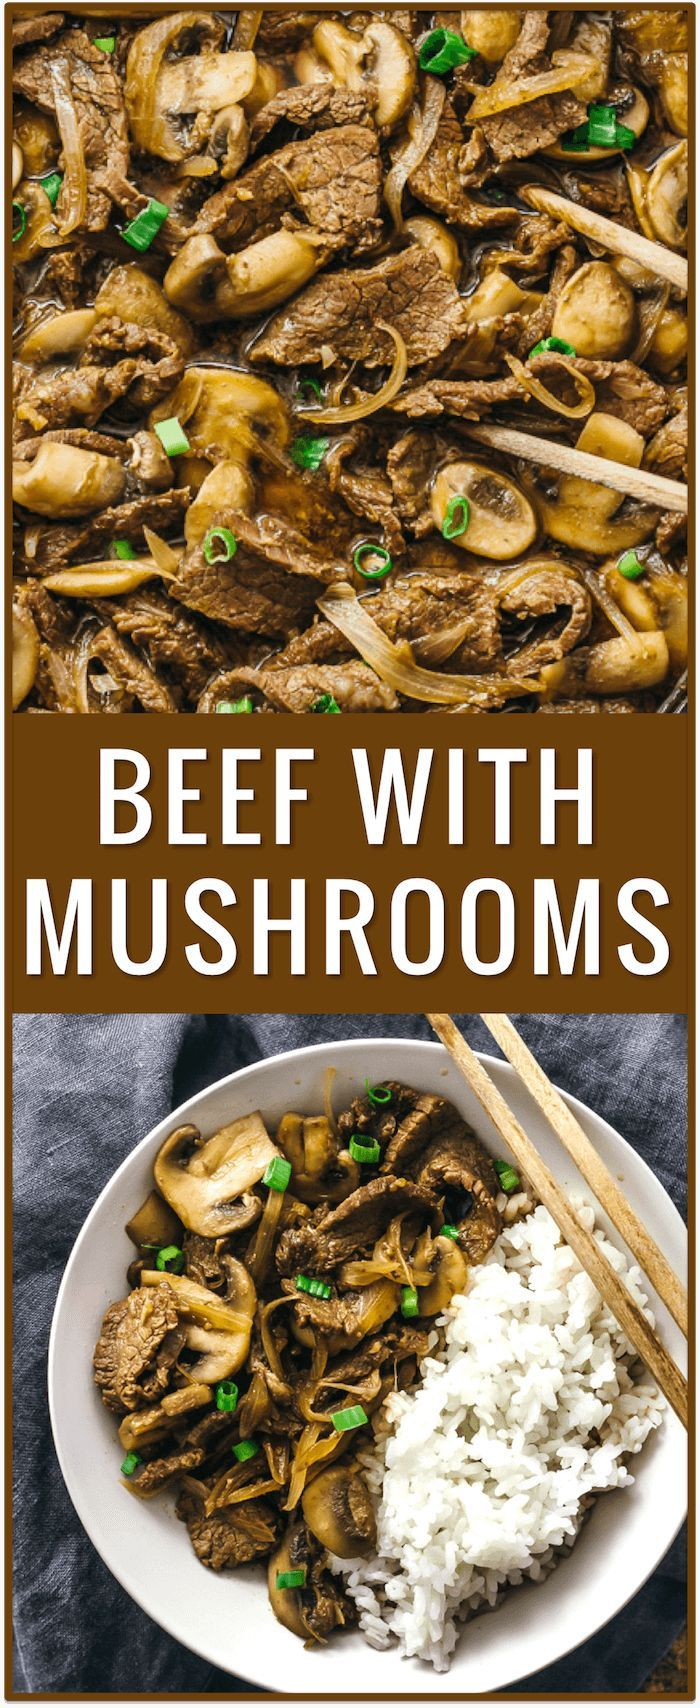 Easy Beef With Mushrooms And Onions Recipe Steak And Mushrooms Sauce Sauteed Mushrooms With Red Wine S Beef With Mushroom Steak And Mushrooms Onion Recipes